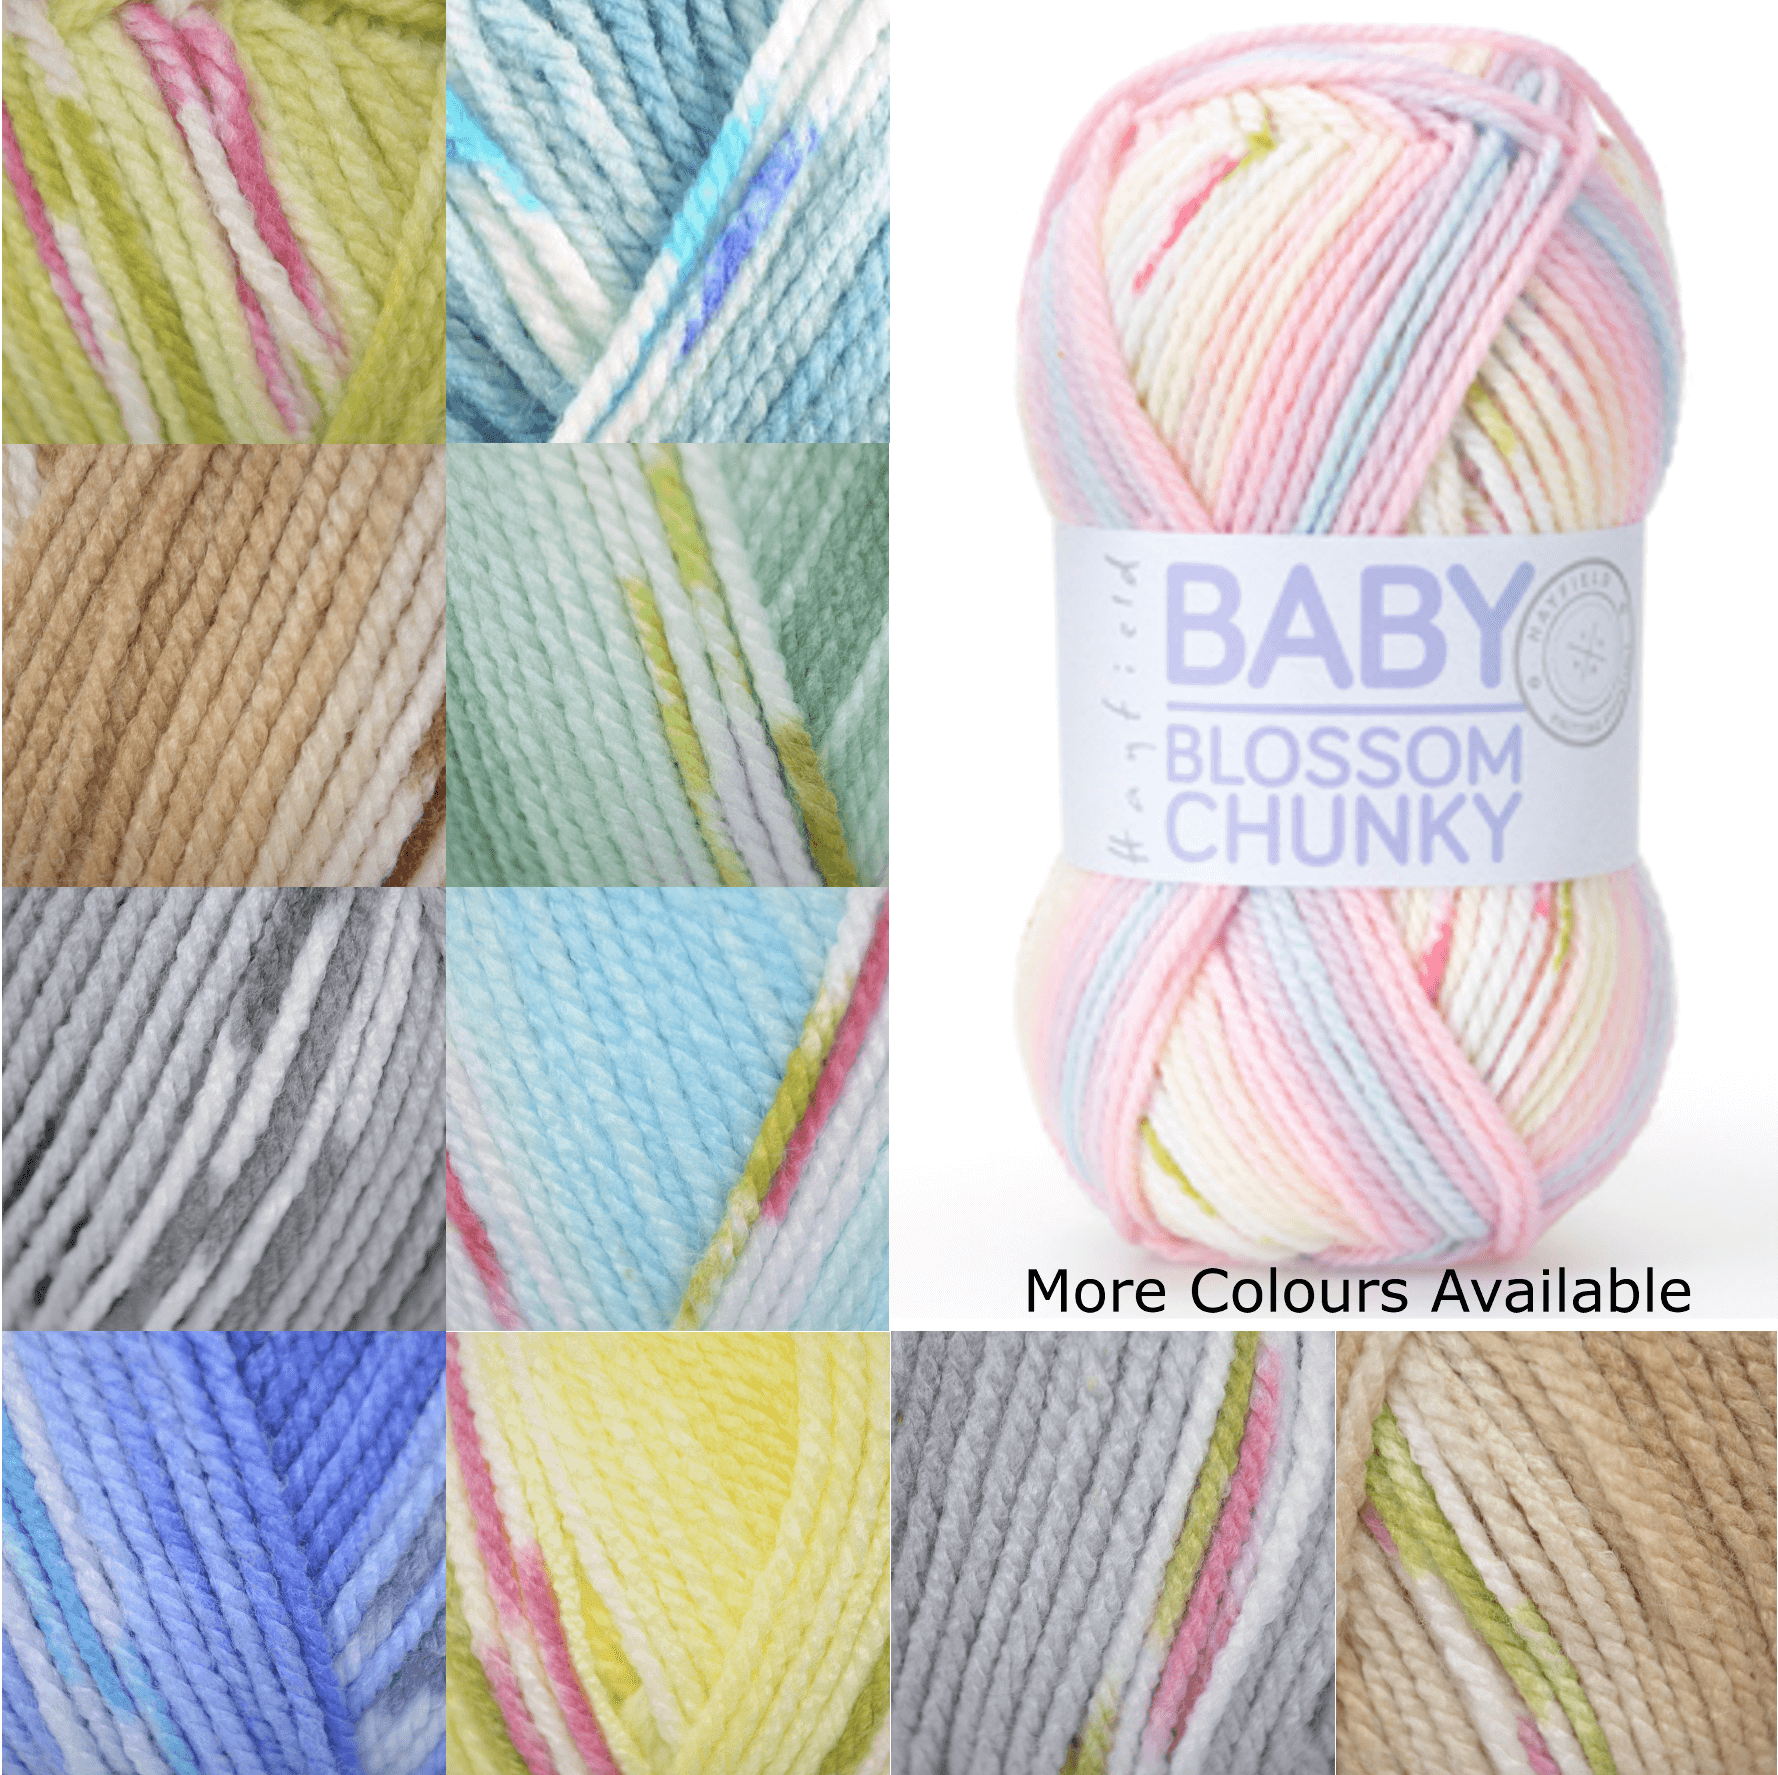 Sirdar Hayfield Baby Blossom Chunky 100% Acrylic 100g Ball Knit Craft Yarn 350 Baby Bouquet